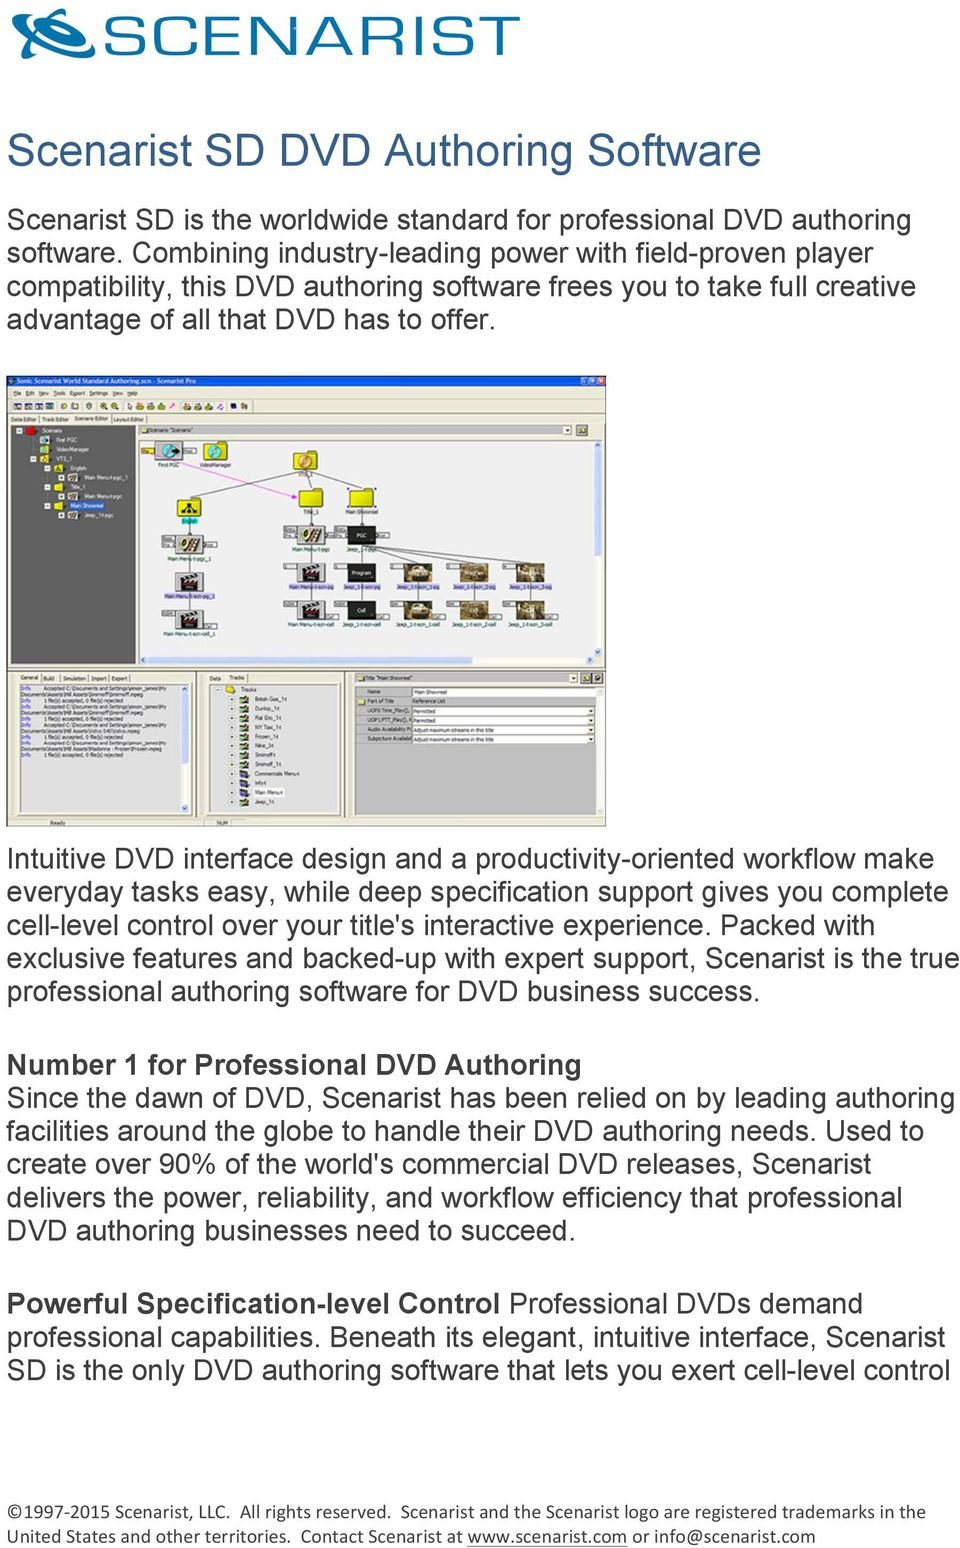 Intuitive DVD interface design and a productivity-oriented workflow make everyday tasks easy, while deep specification support gives you complete cell-level control over your title's interactive